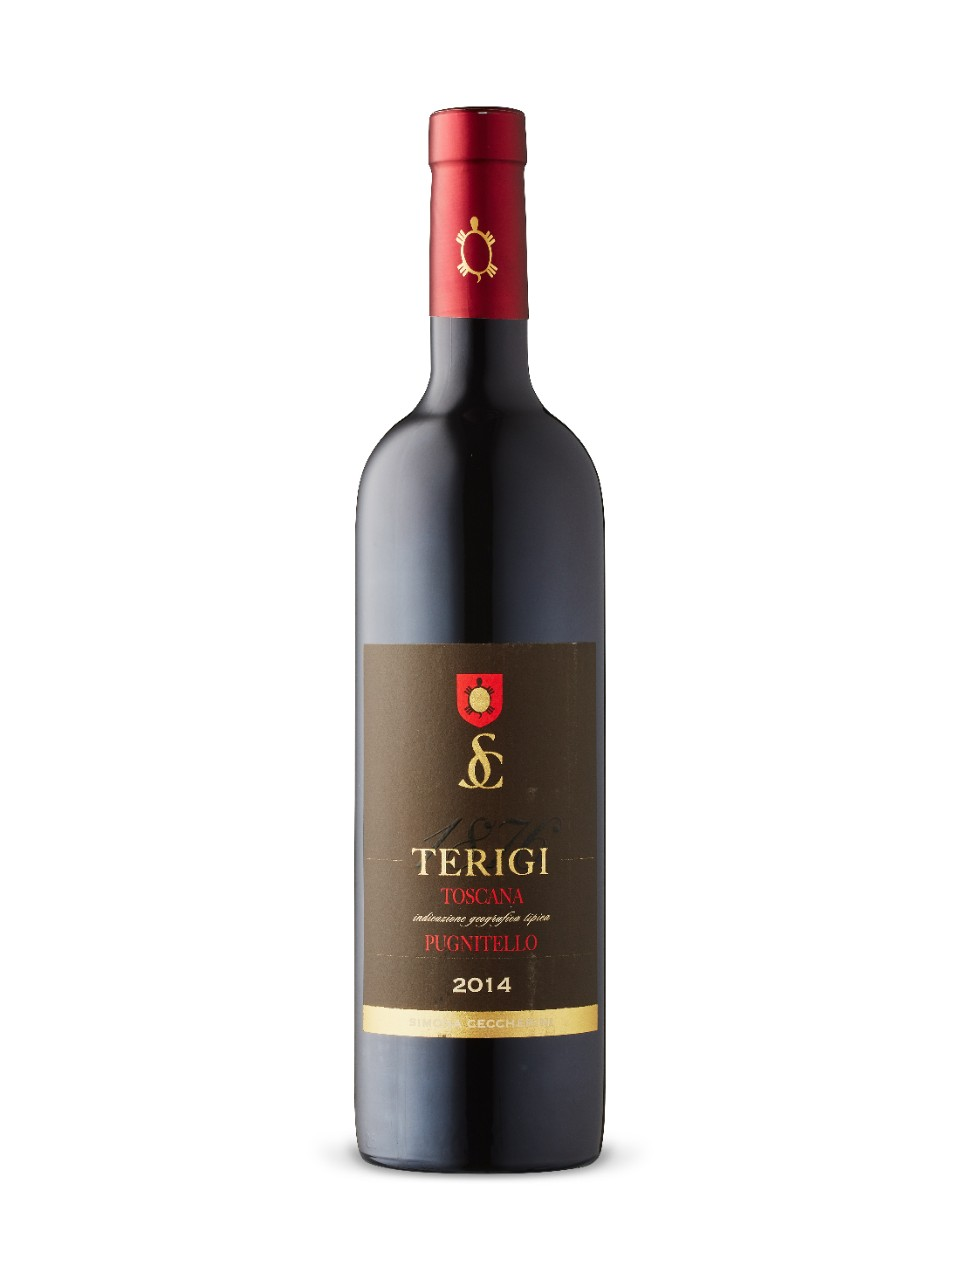 Terigi 2014 from LCBO